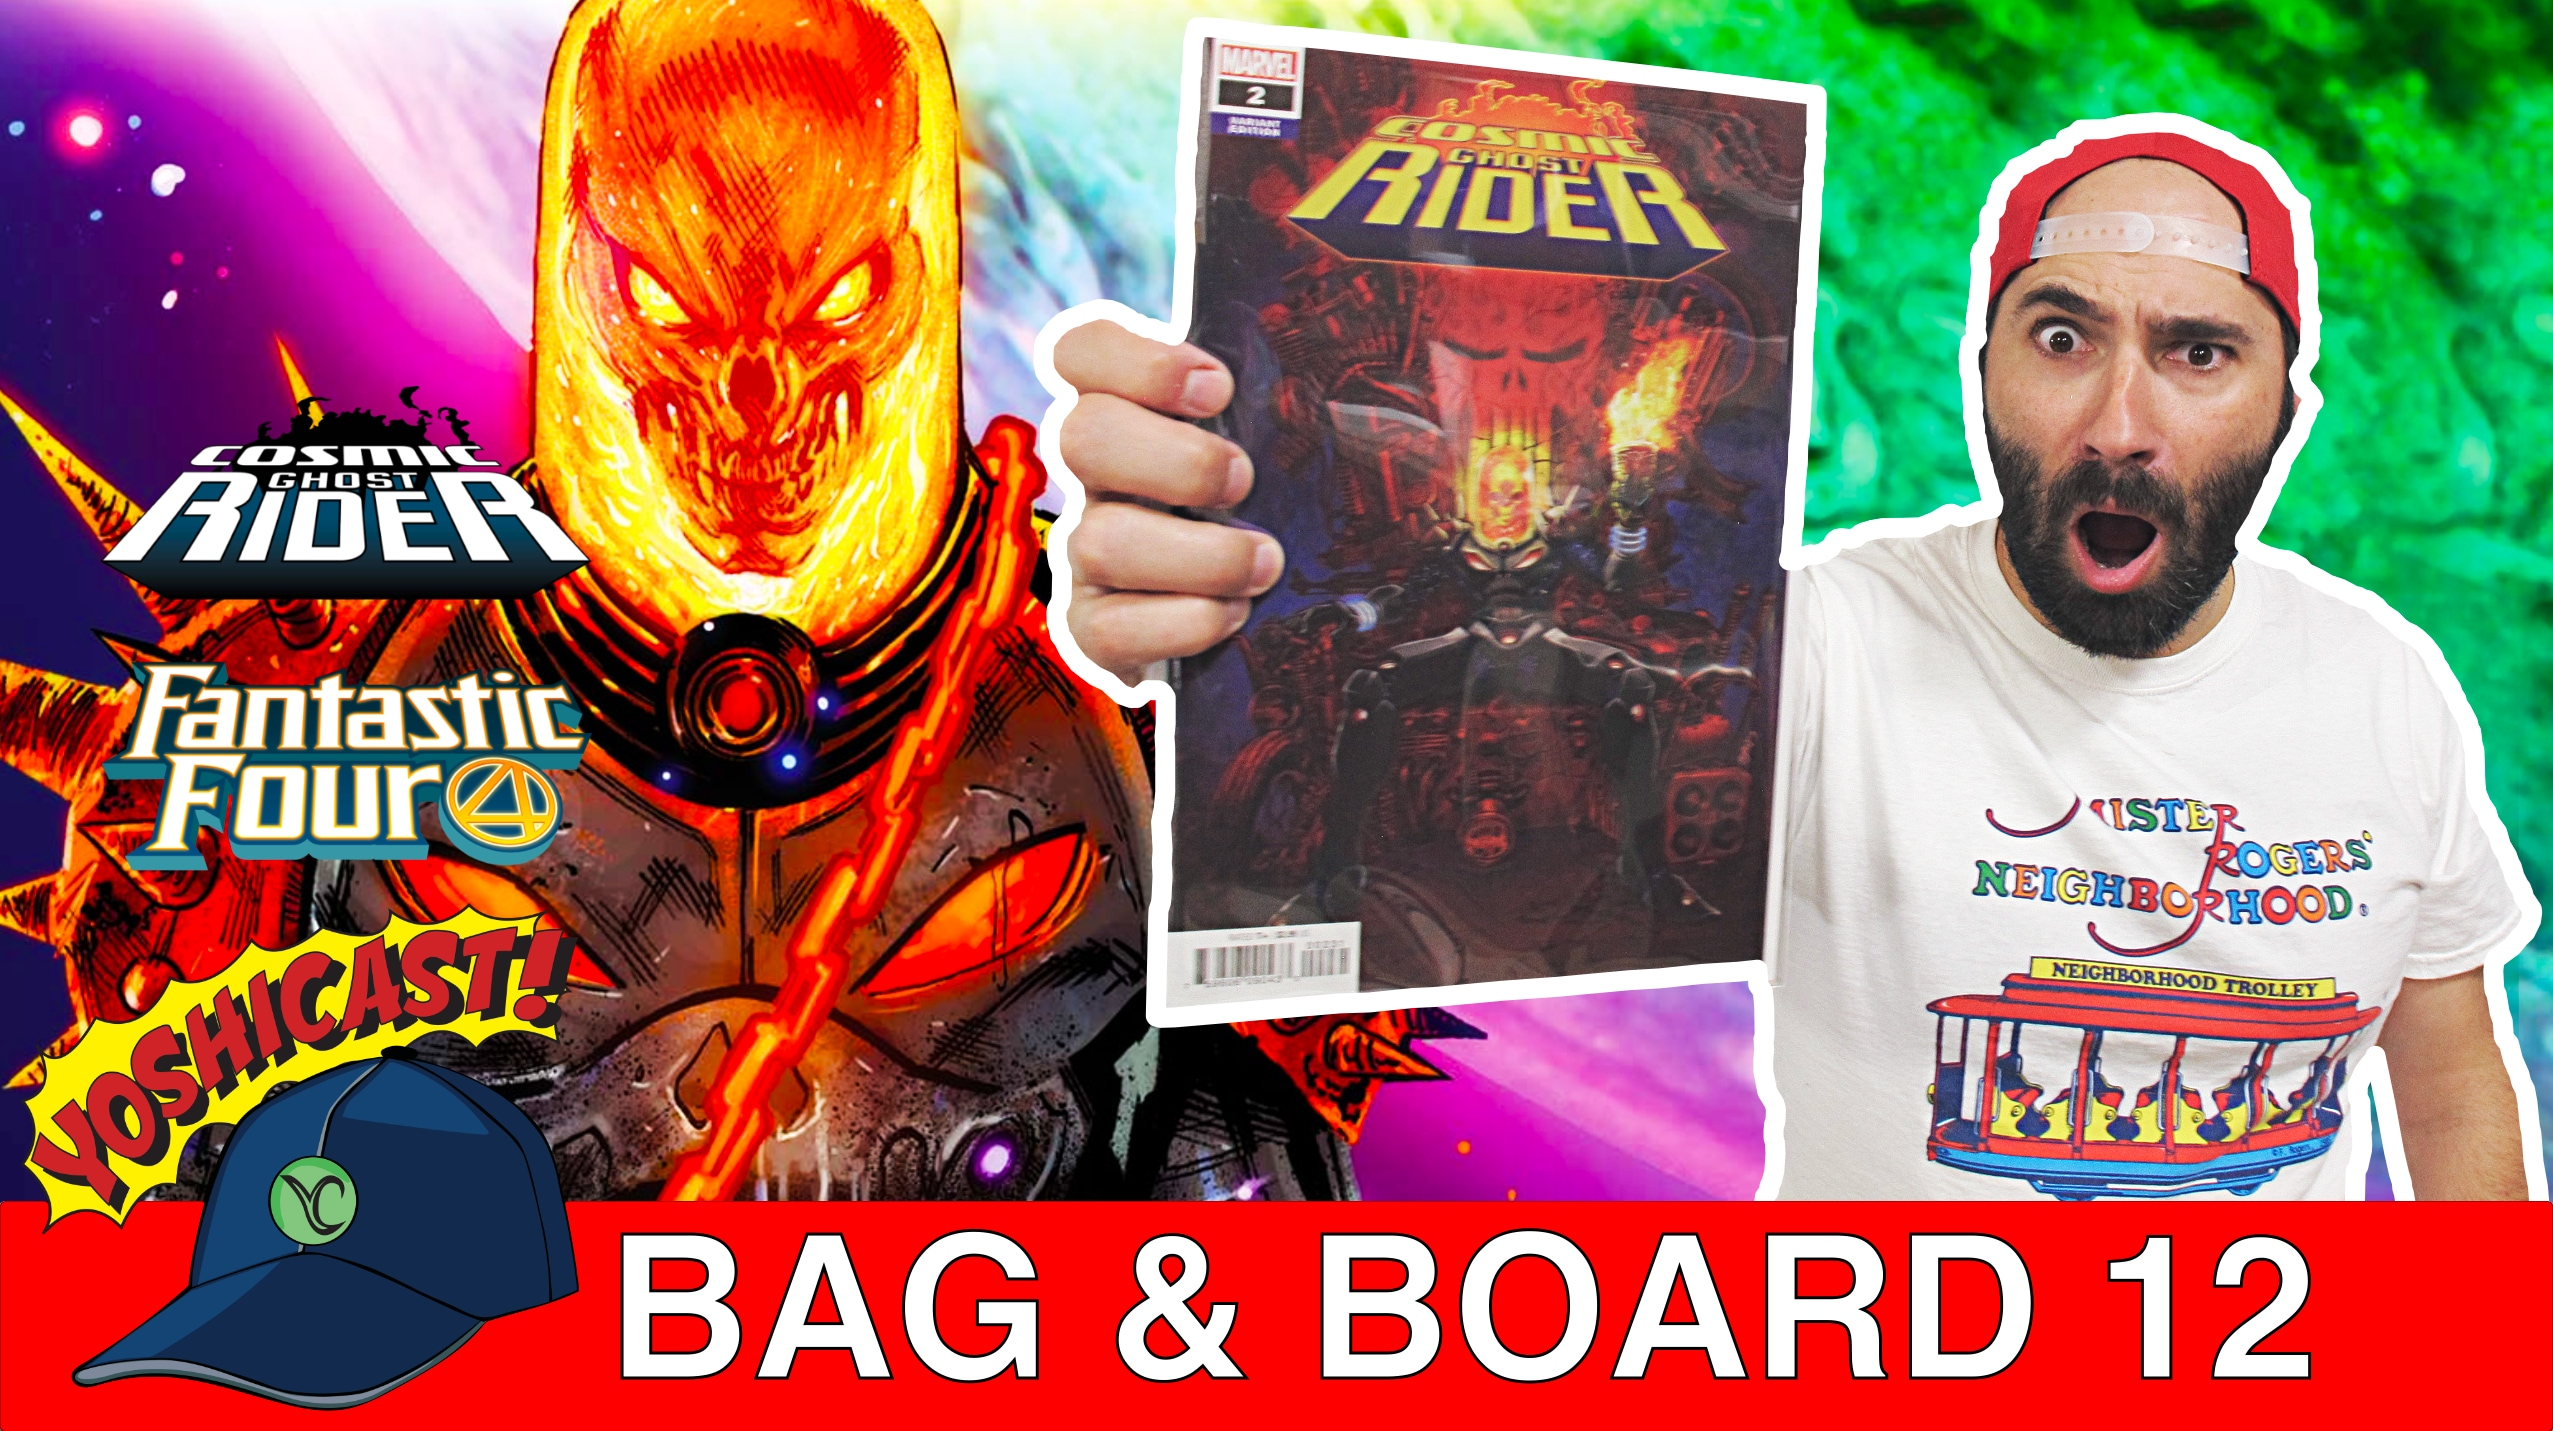 Bag & Board 12 | Comic Book Haul Cosmic Ghost RIDER, Punisher, Wolverine, Fantastic Four